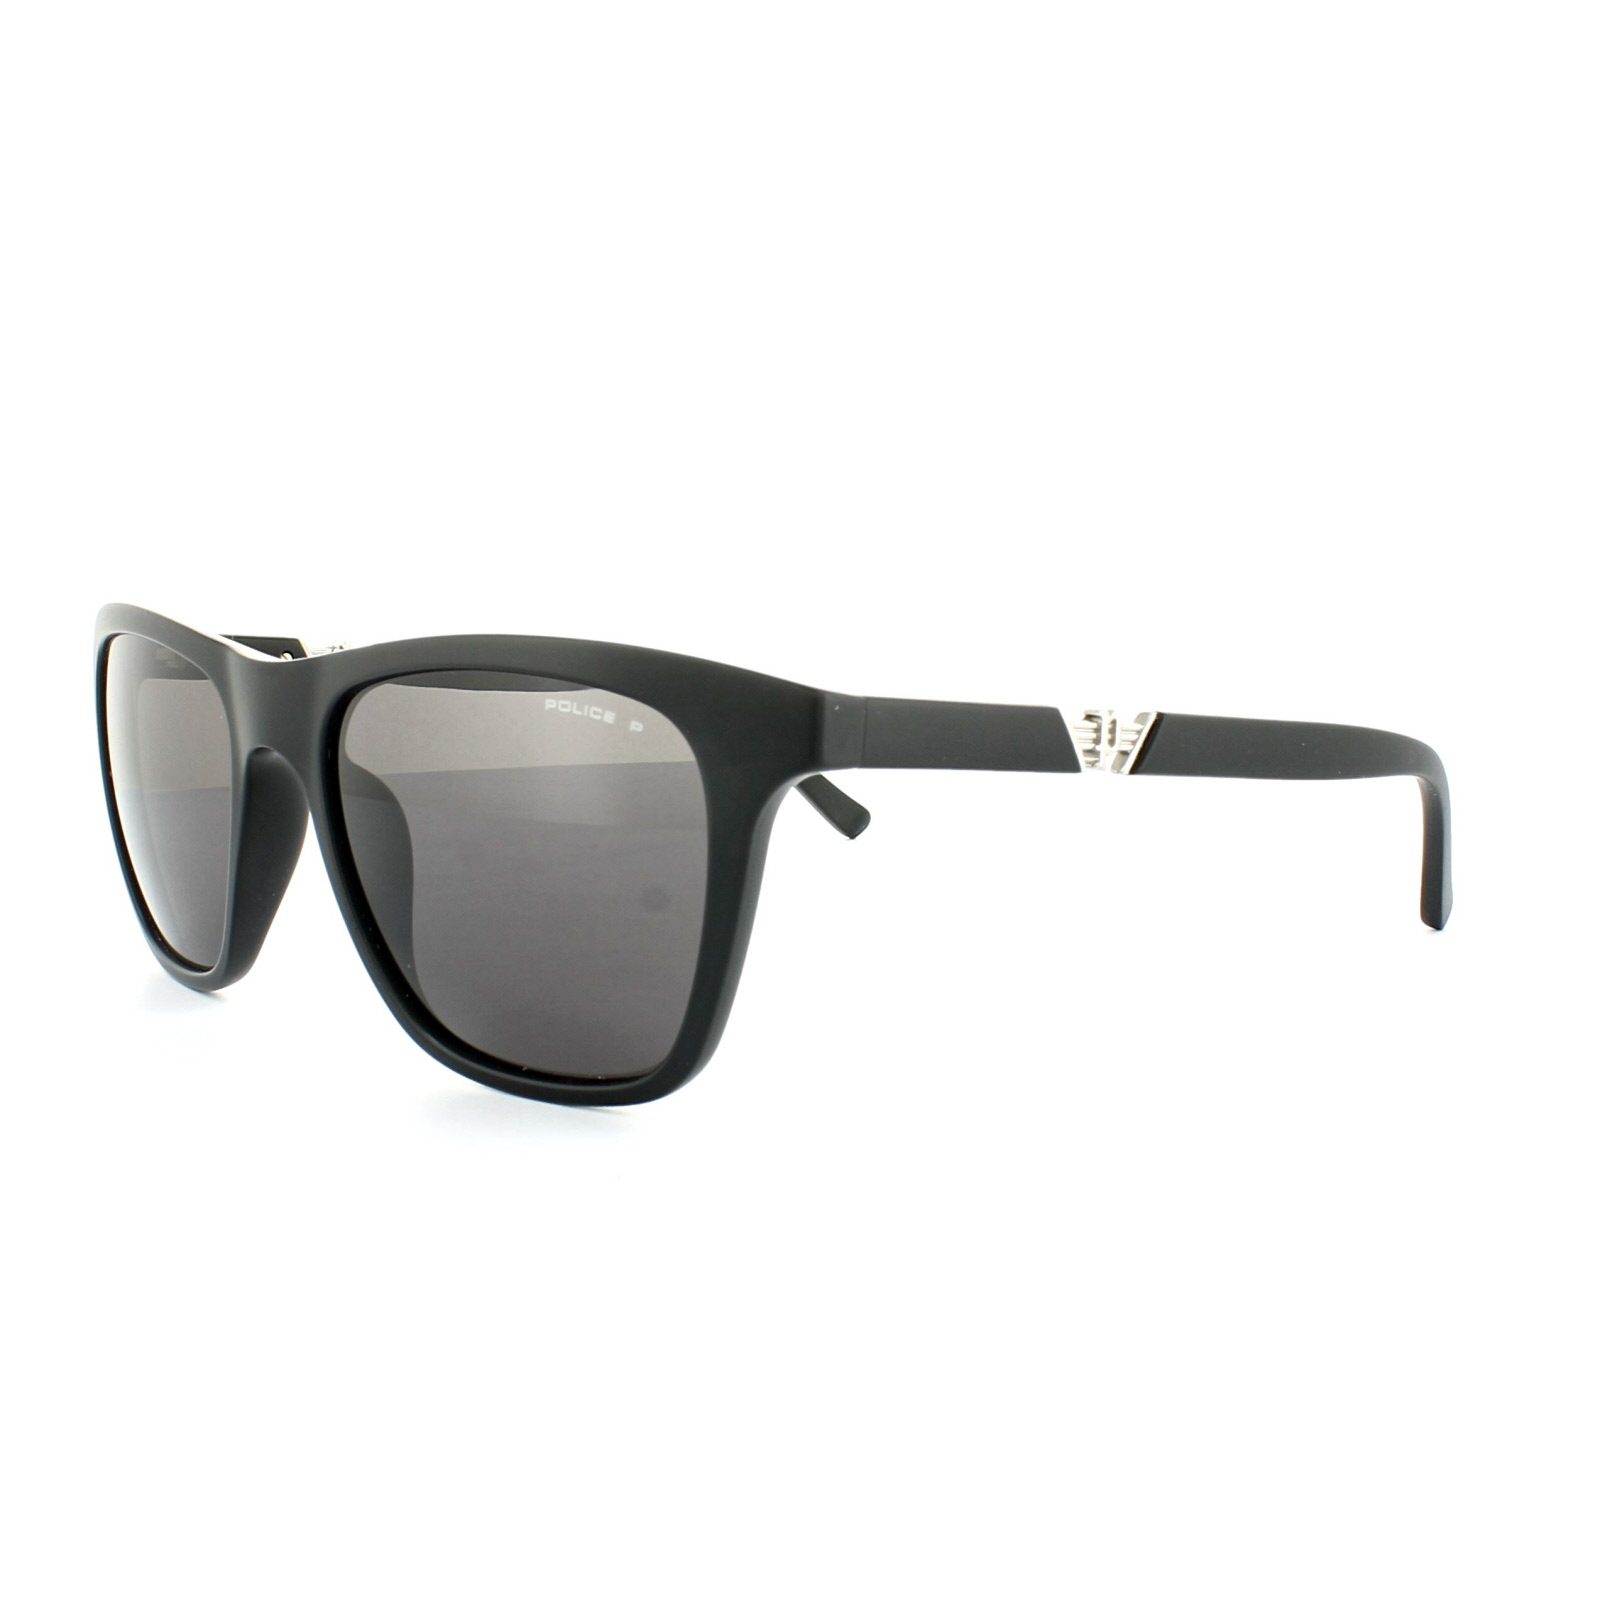 97a0729dab4 Details about Police Sunglasses S1800M Drift 3 703P Matt Black Grey  Polarized